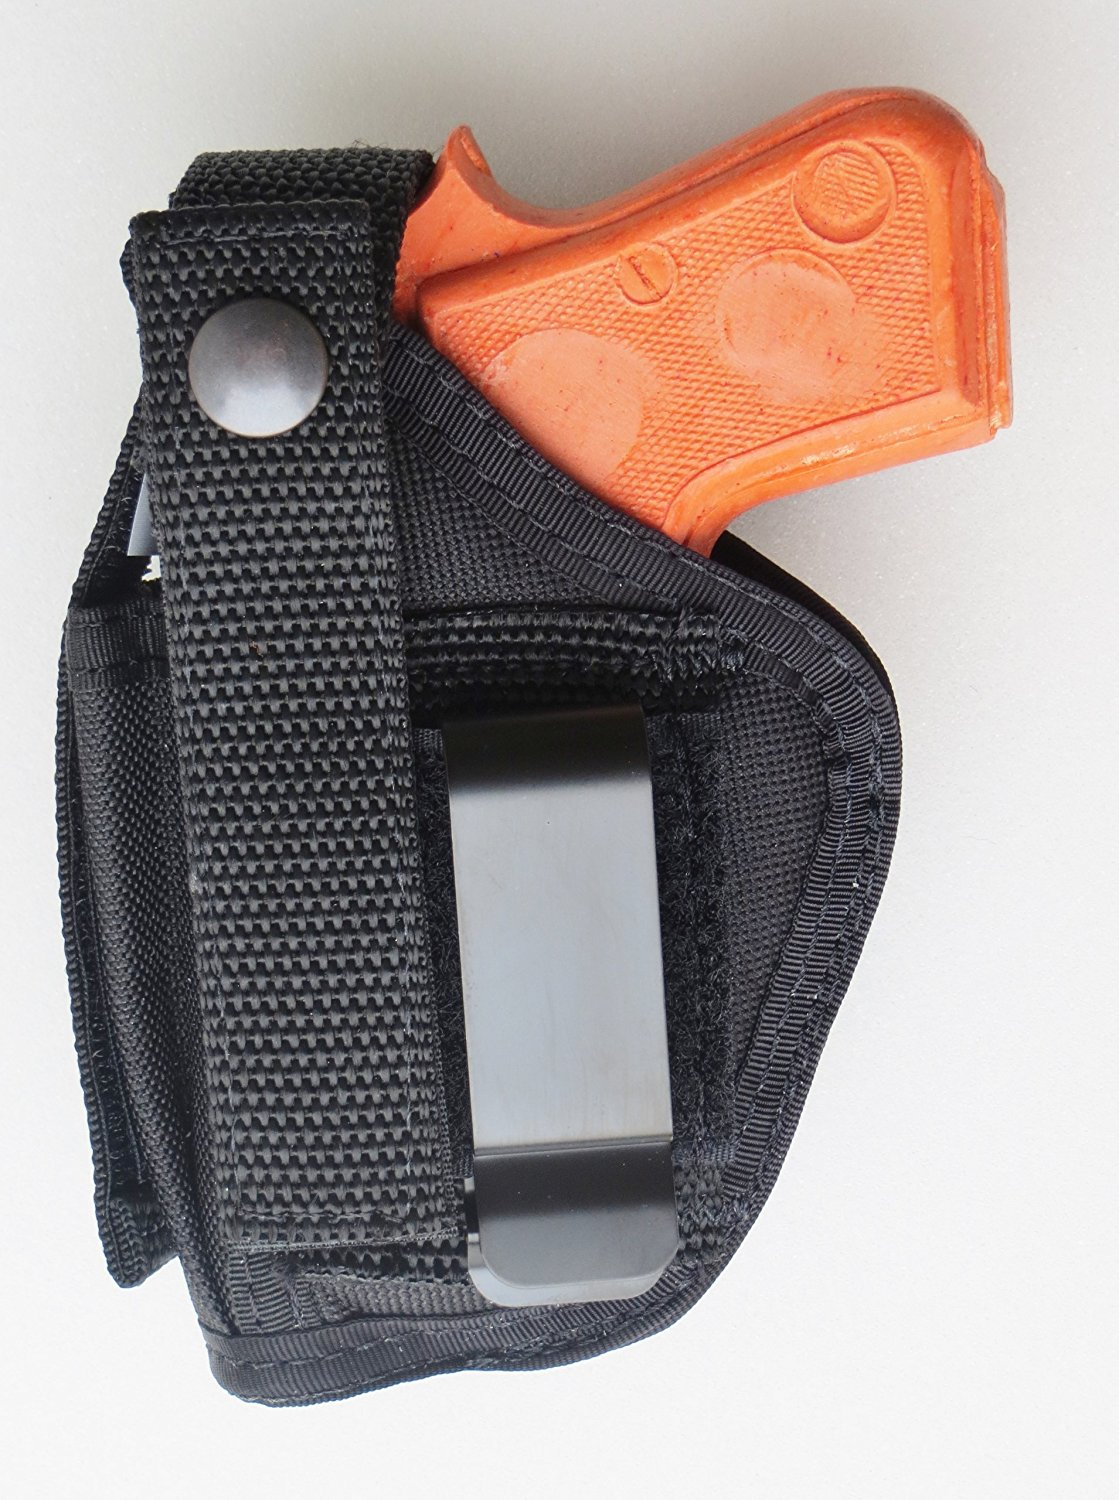 32 Best Staying Power Images On Pinterest: What Is The Best Holster For Kel Tec P-32?